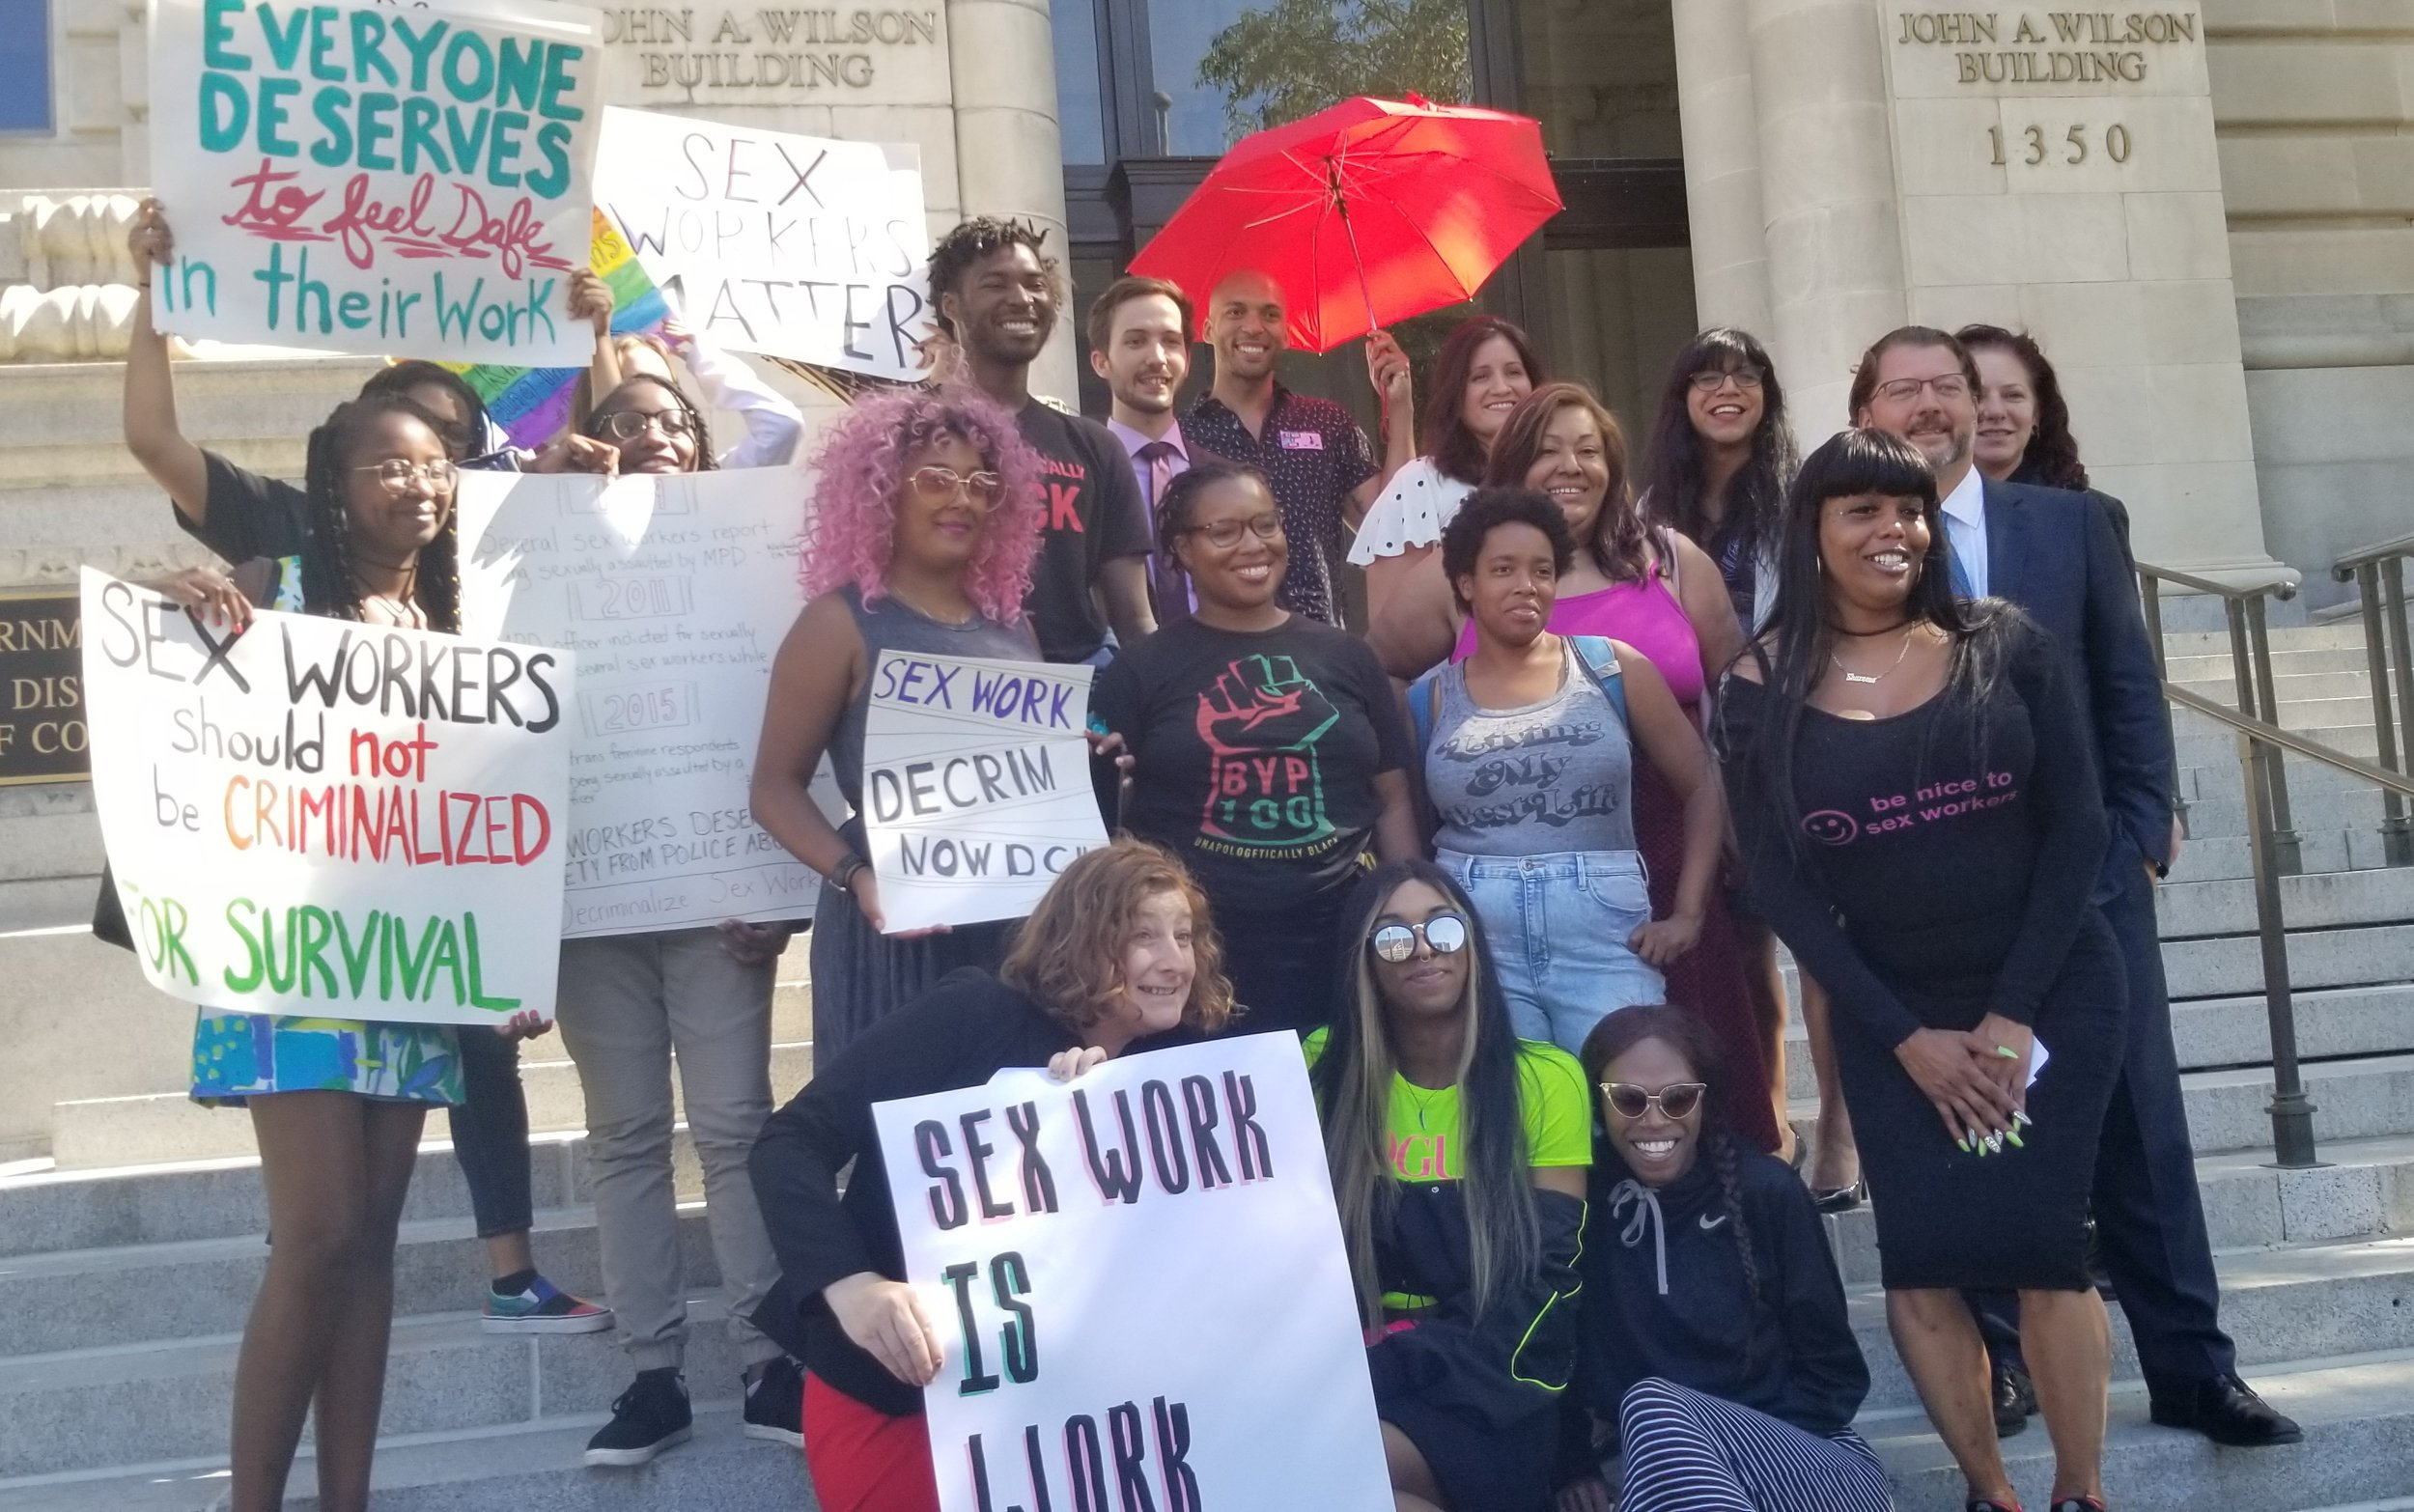 DECRIMNOW organizers, advocates, allies, and Councilmember David Grosso at the press conference for the bill introduction. (June 3, 2019)